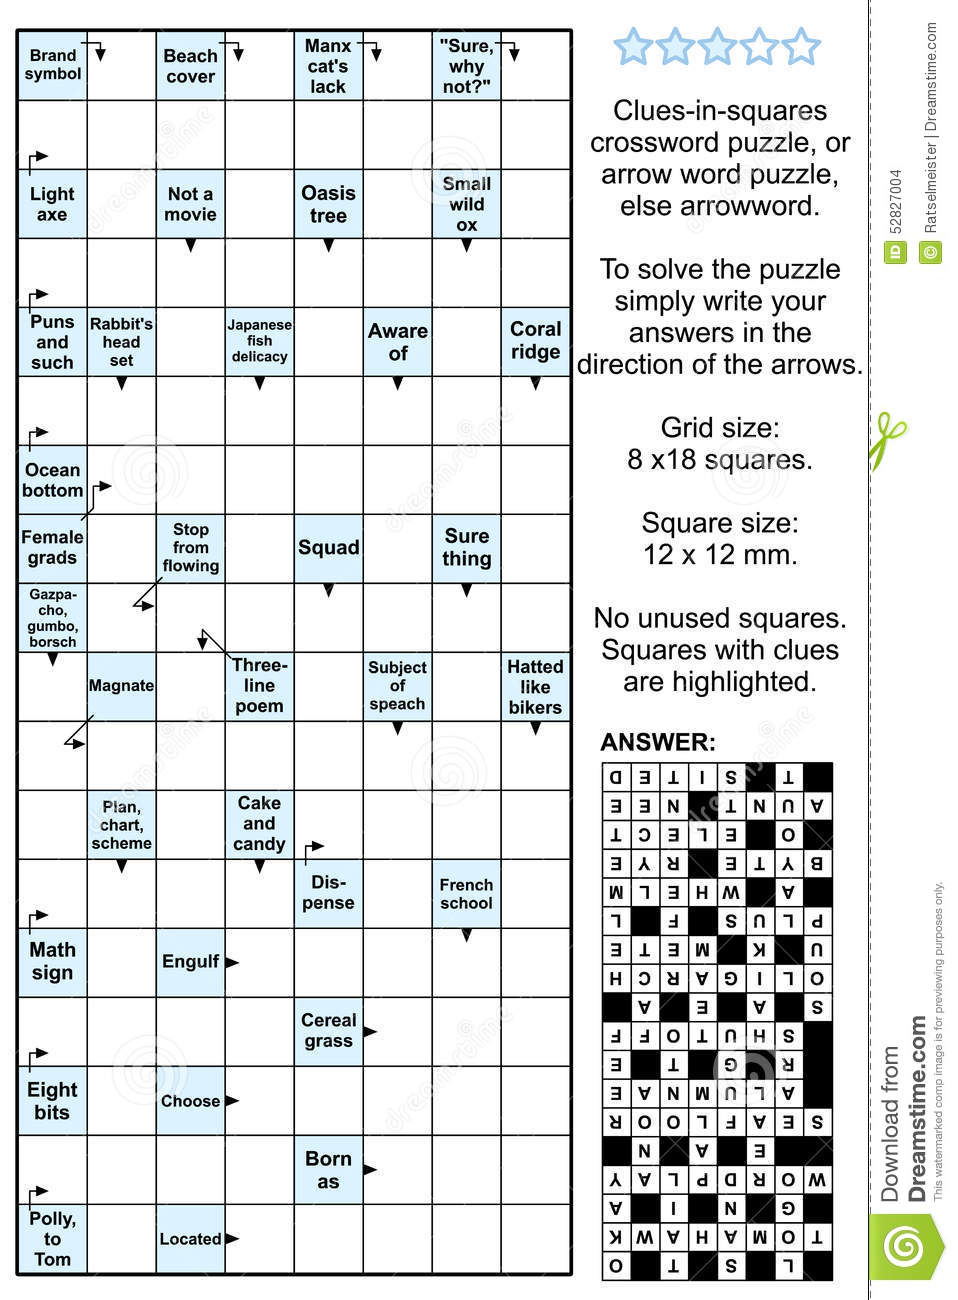 Arrowword clues in squares crossword puzzle stock vector arrowword clues in squares crossword puzzle answer puzzles biocorpaavc Gallery